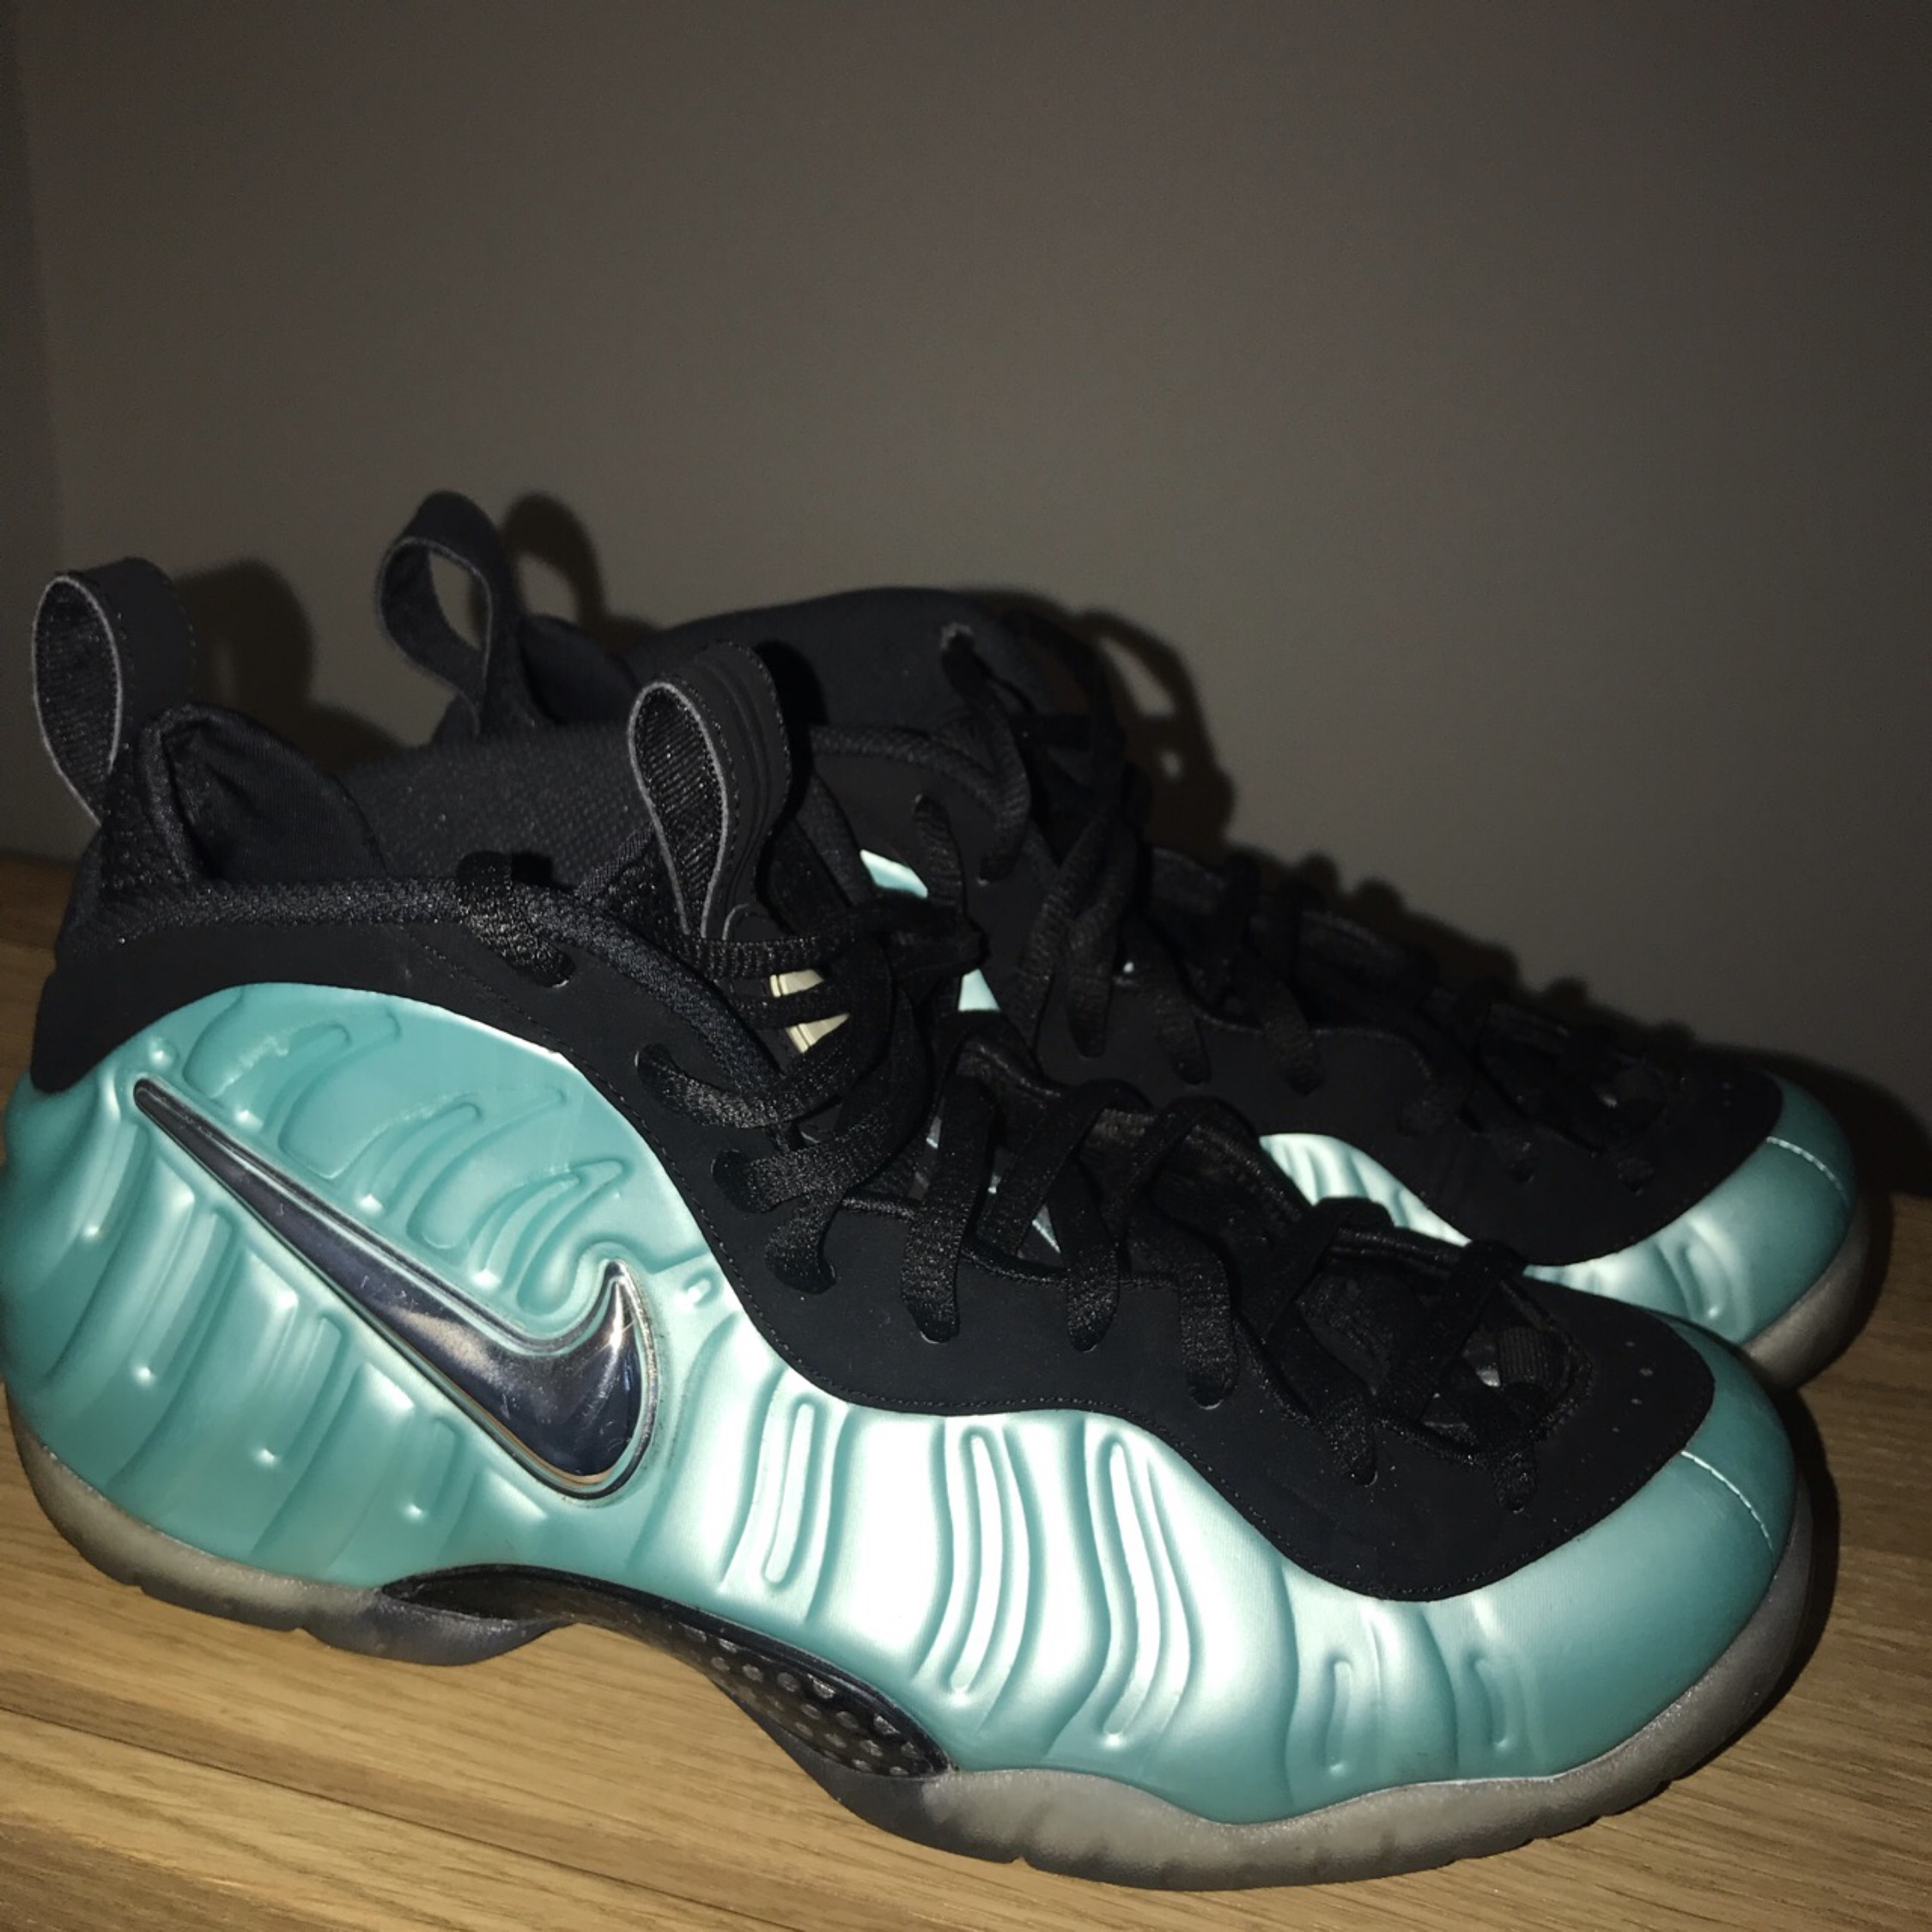 huge discount 70e1e 91fe9 Foamposite Pro Island Green Us 9.5